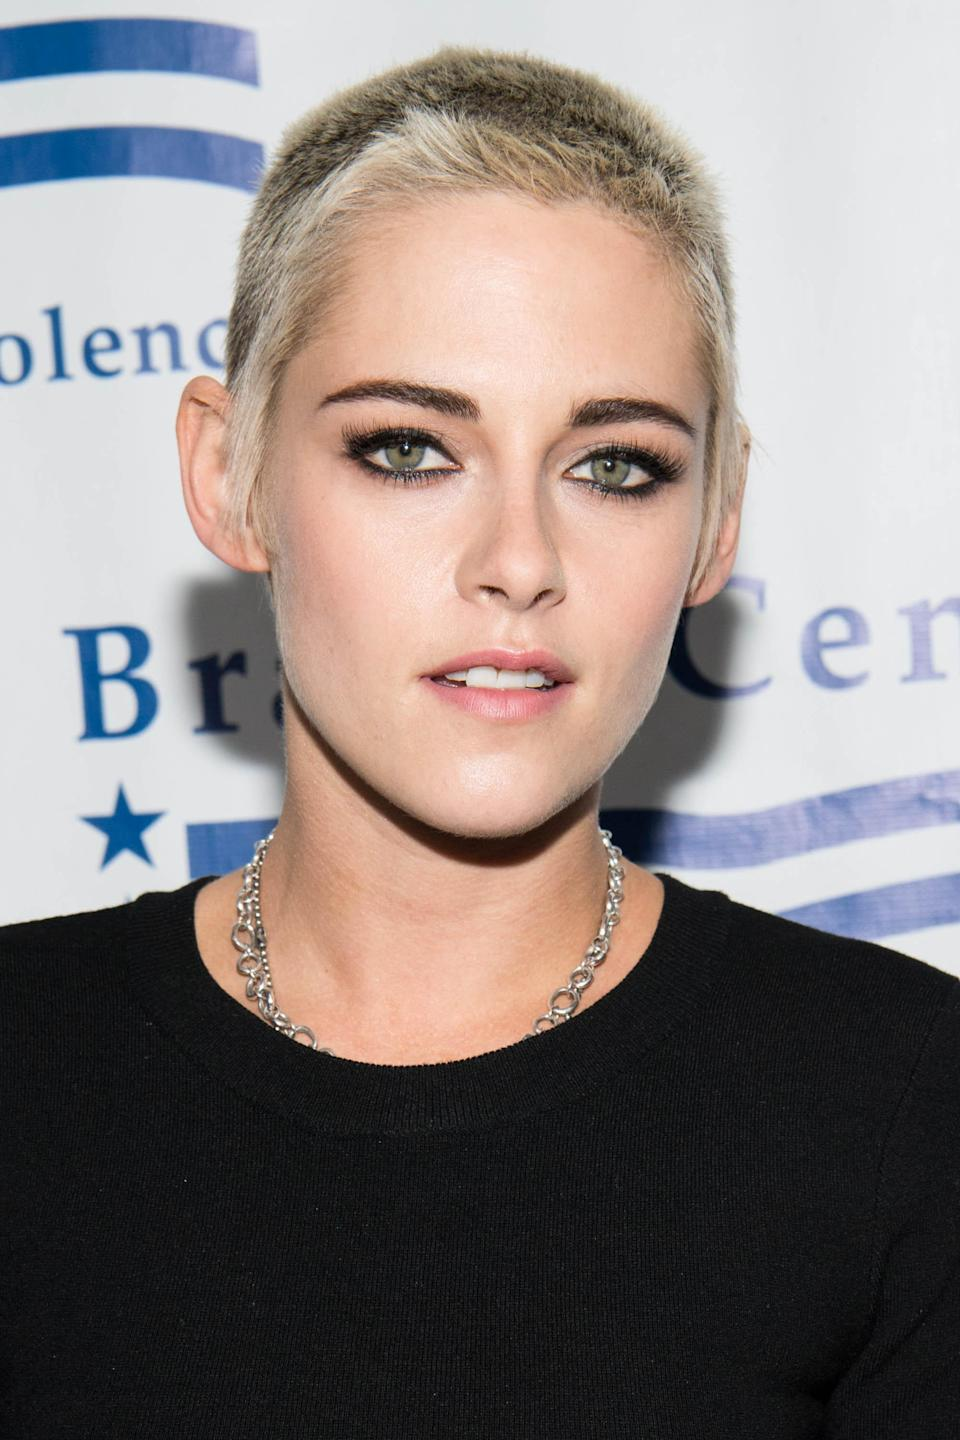 "Stewart's <a href=""https://www.glamour.com/story/kristen-stewart-has-frosted-tips?mbid=synd_yahoo_rss"" rel=""nofollow noopener"" target=""_blank"" data-ylk=""slk:bright blonde and frosted tips"" class=""link rapid-noclick-resp"">bright blonde and frosted tips</a> contrasts with her typically dark style in the coolest way."